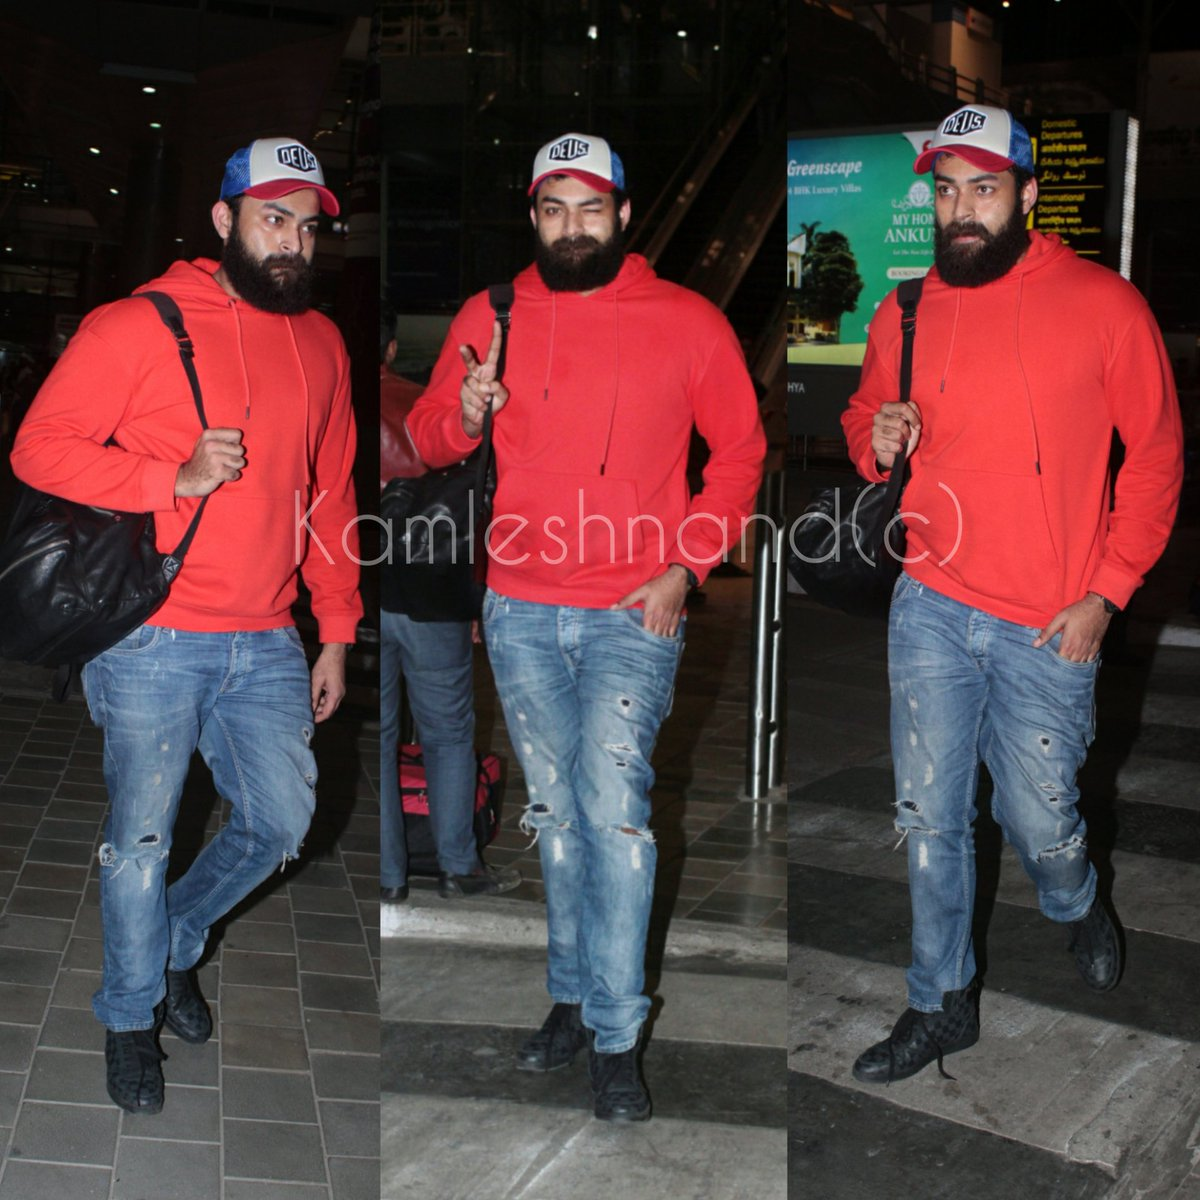 Handsome hunk #VarunTej papped at Rgia look cool in casual  gearing up for boxer @kamlesh_nand @IAmVarunTej #Tollywood #southcelebs pic.twitter.com/cHY006rPRb